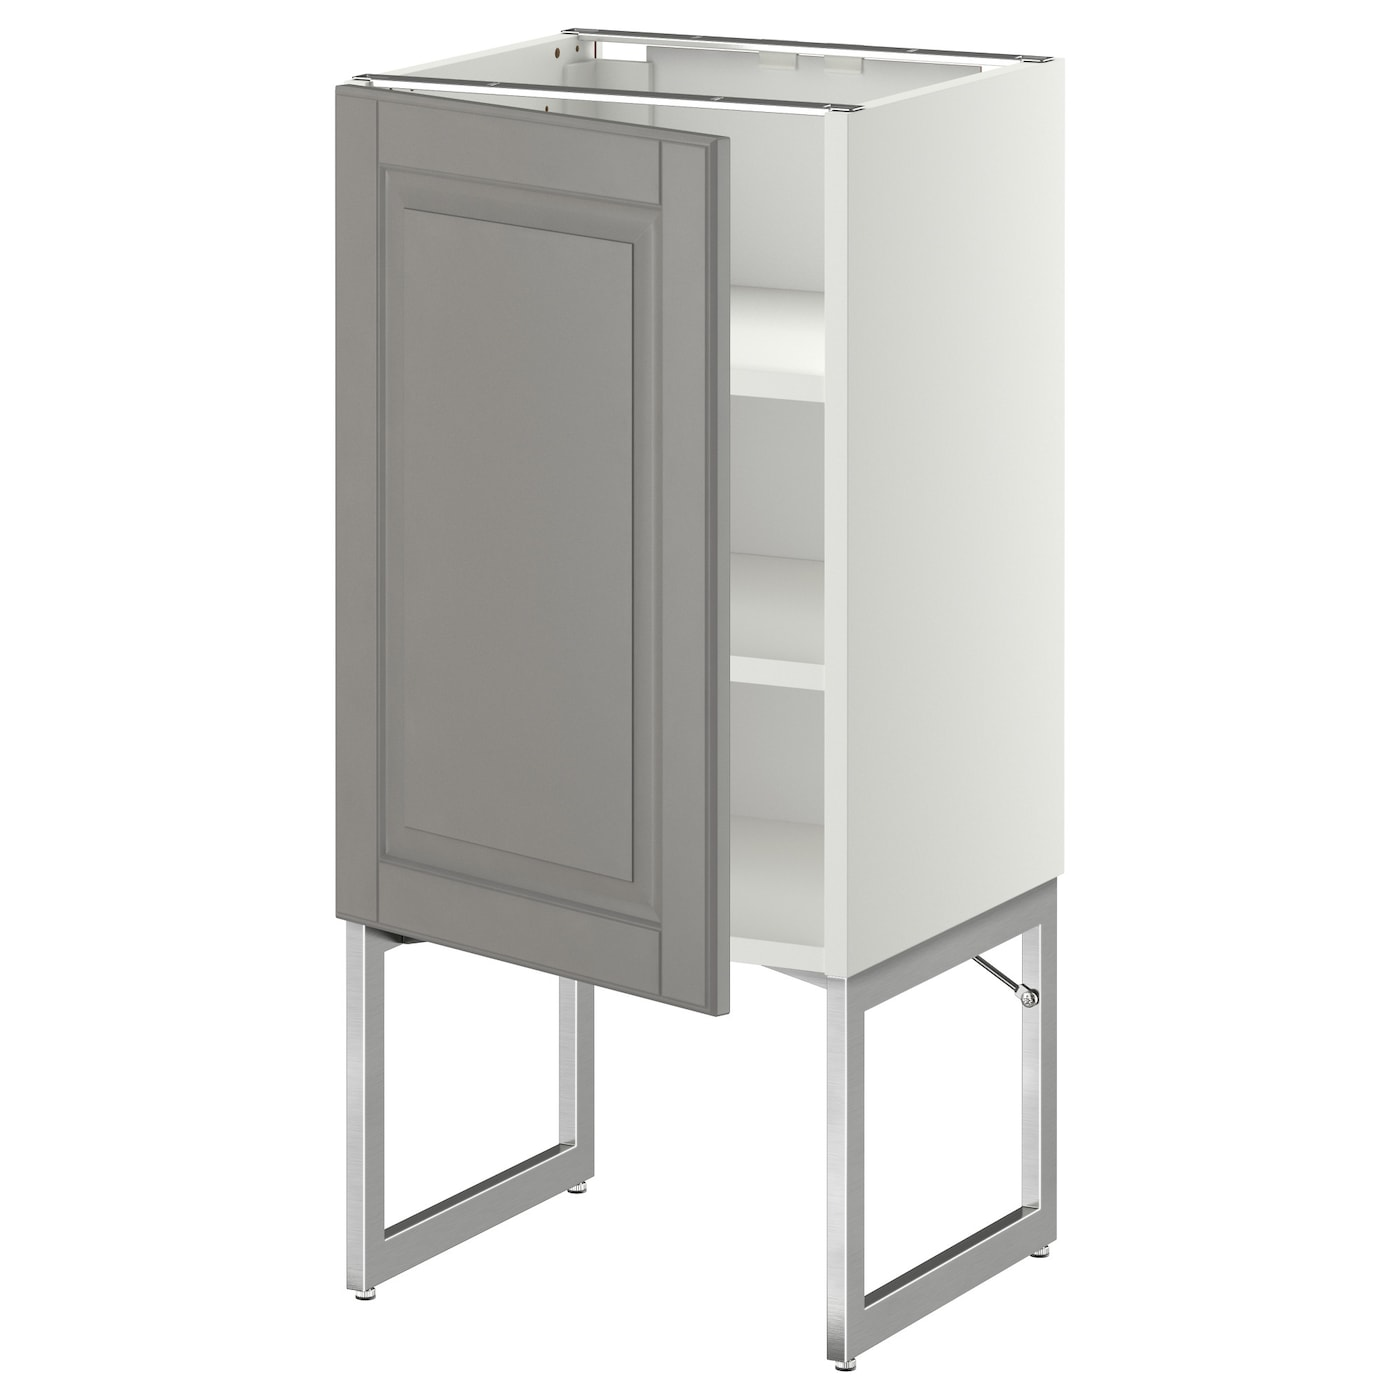 Metod base cabinet with shelves white bodbyn grey 40x37x60 for White kitchen base cabinets